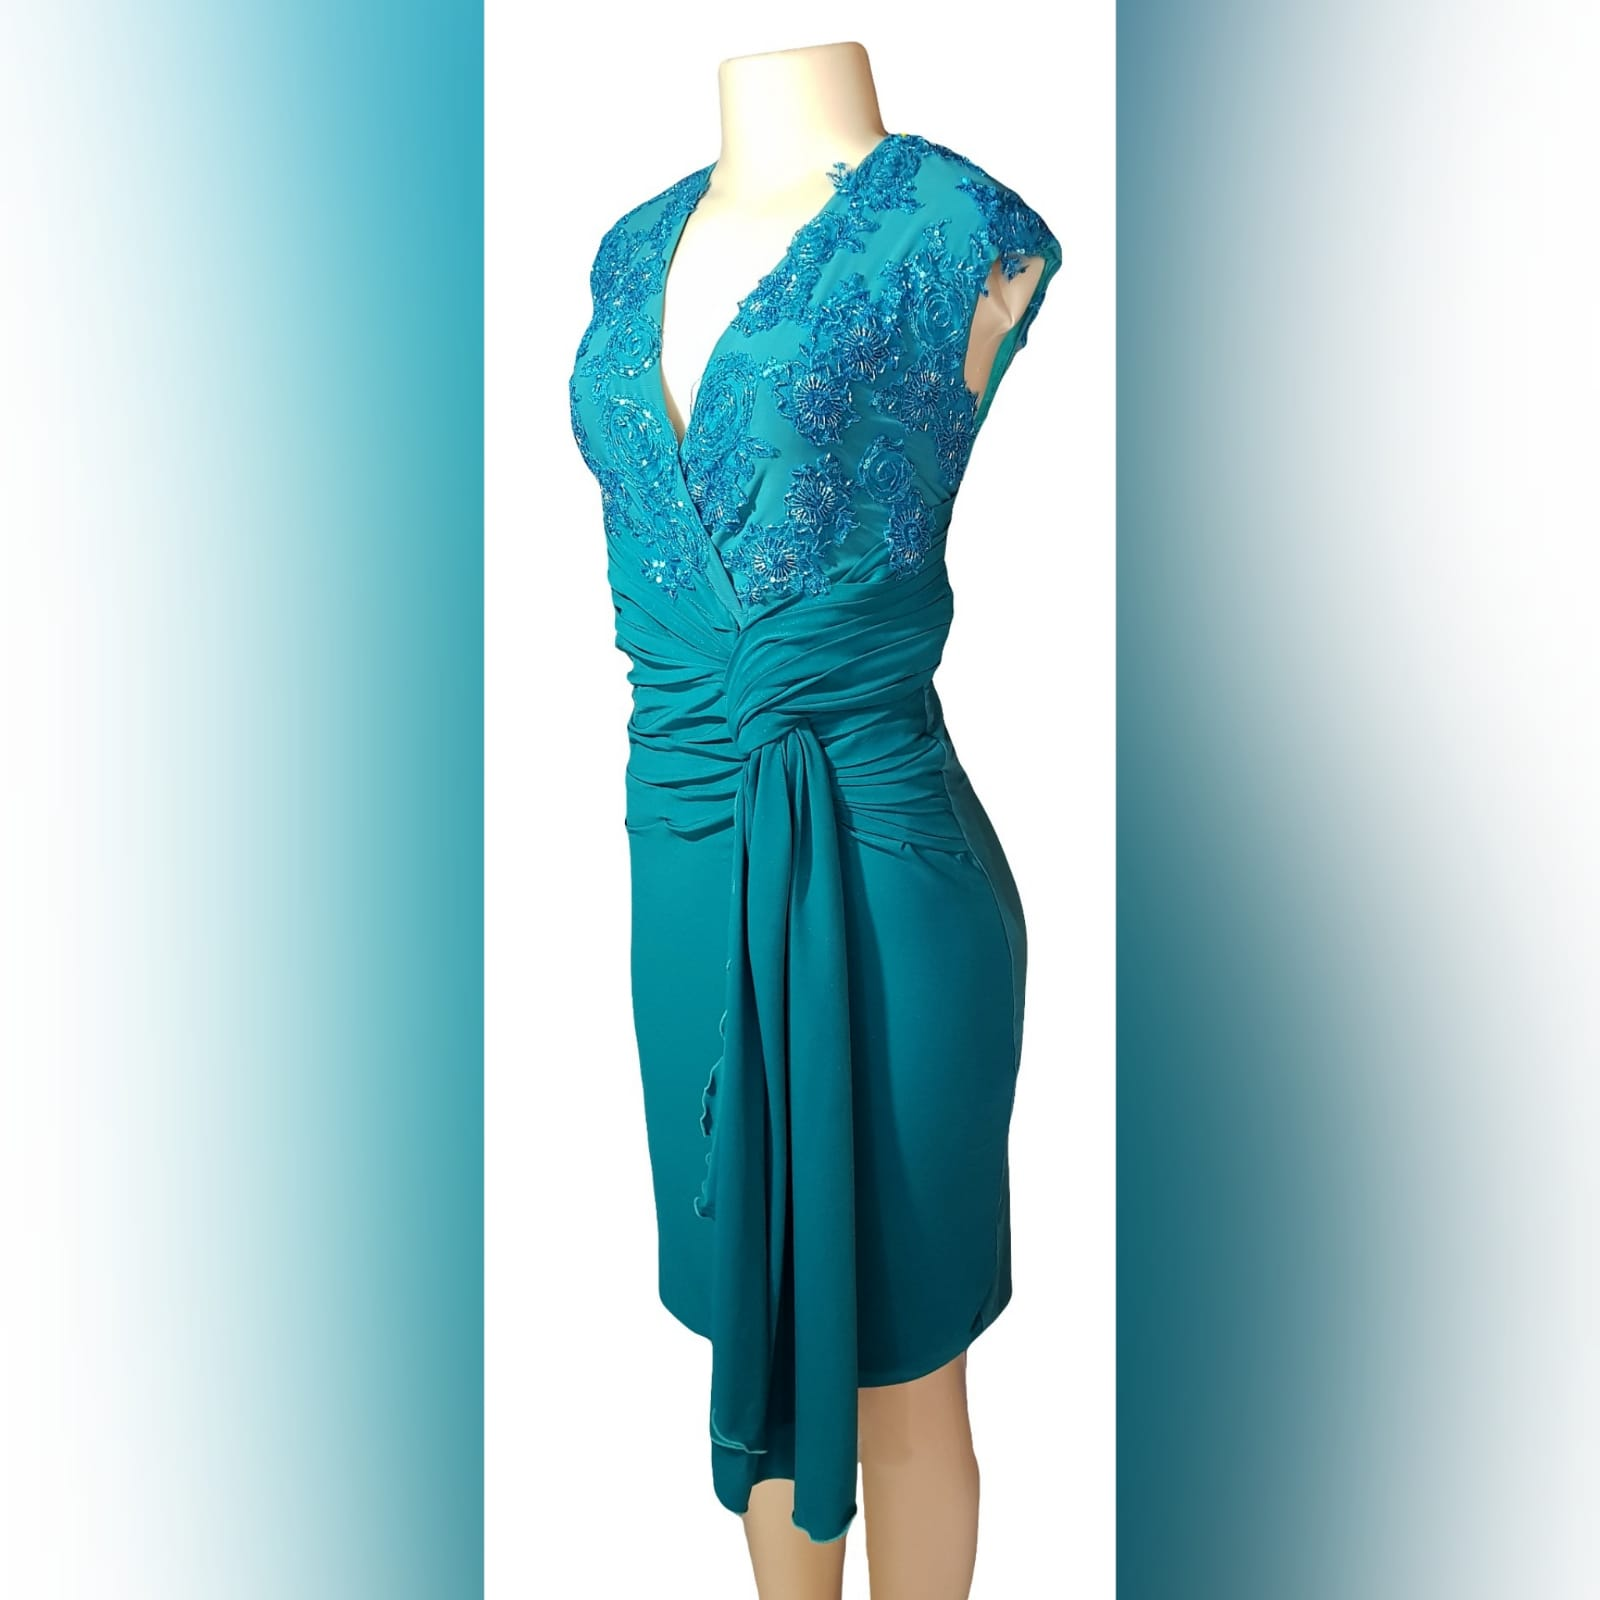 Pencil fit turquoise knee length formal dress 2 a pencil fit turquoise knee length formal dress, created for a wedding for mother of bride. This simple elegant design has a crossed v neckline detailed with beaded lace. A ruched belt with ends on the side over the dress.